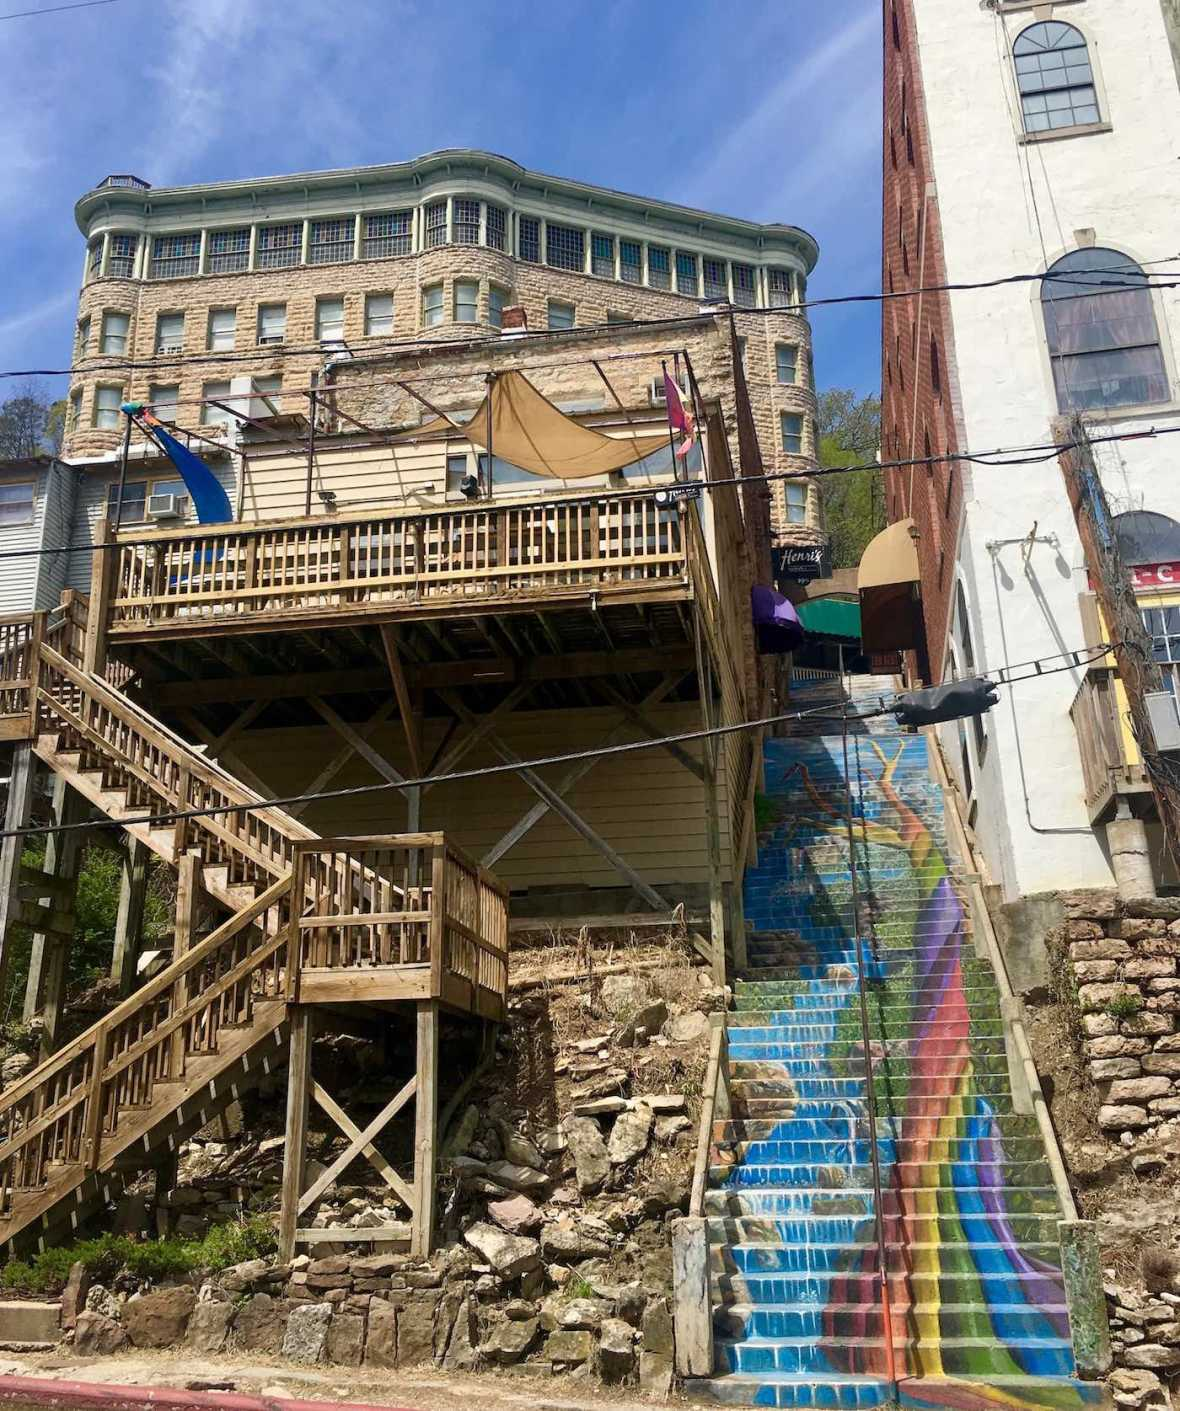 Rainbow tree art staircase in downtown Eureka Springs, Arkansas